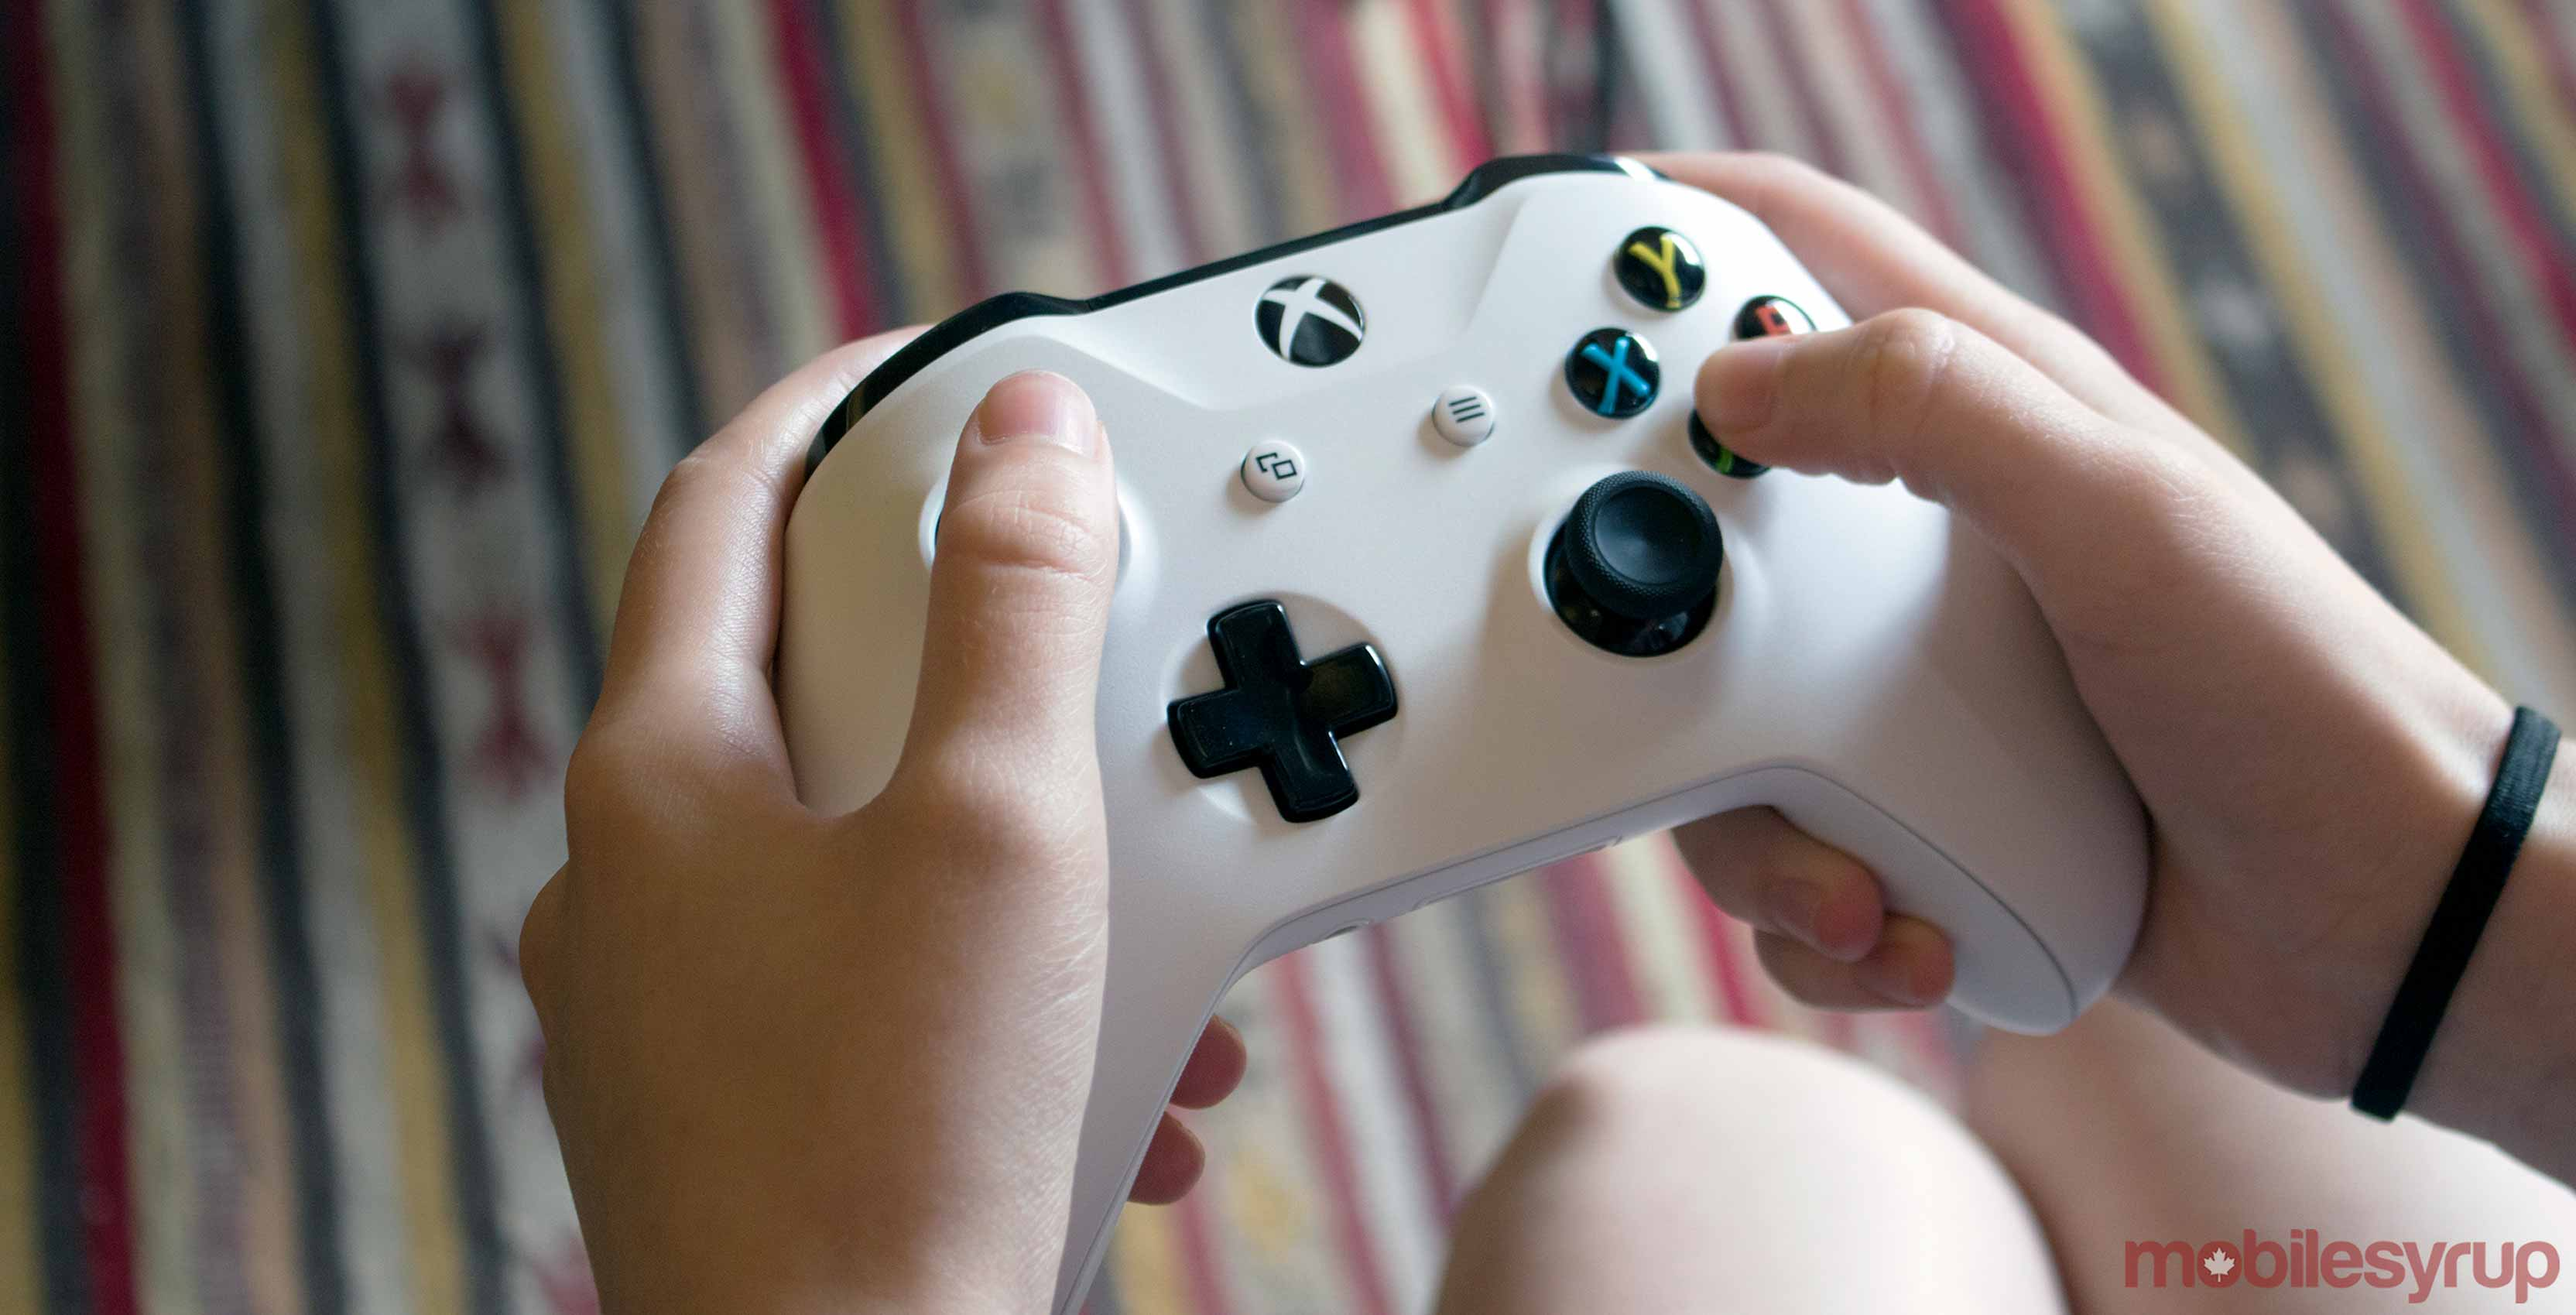 An image of a white Xbox One controller